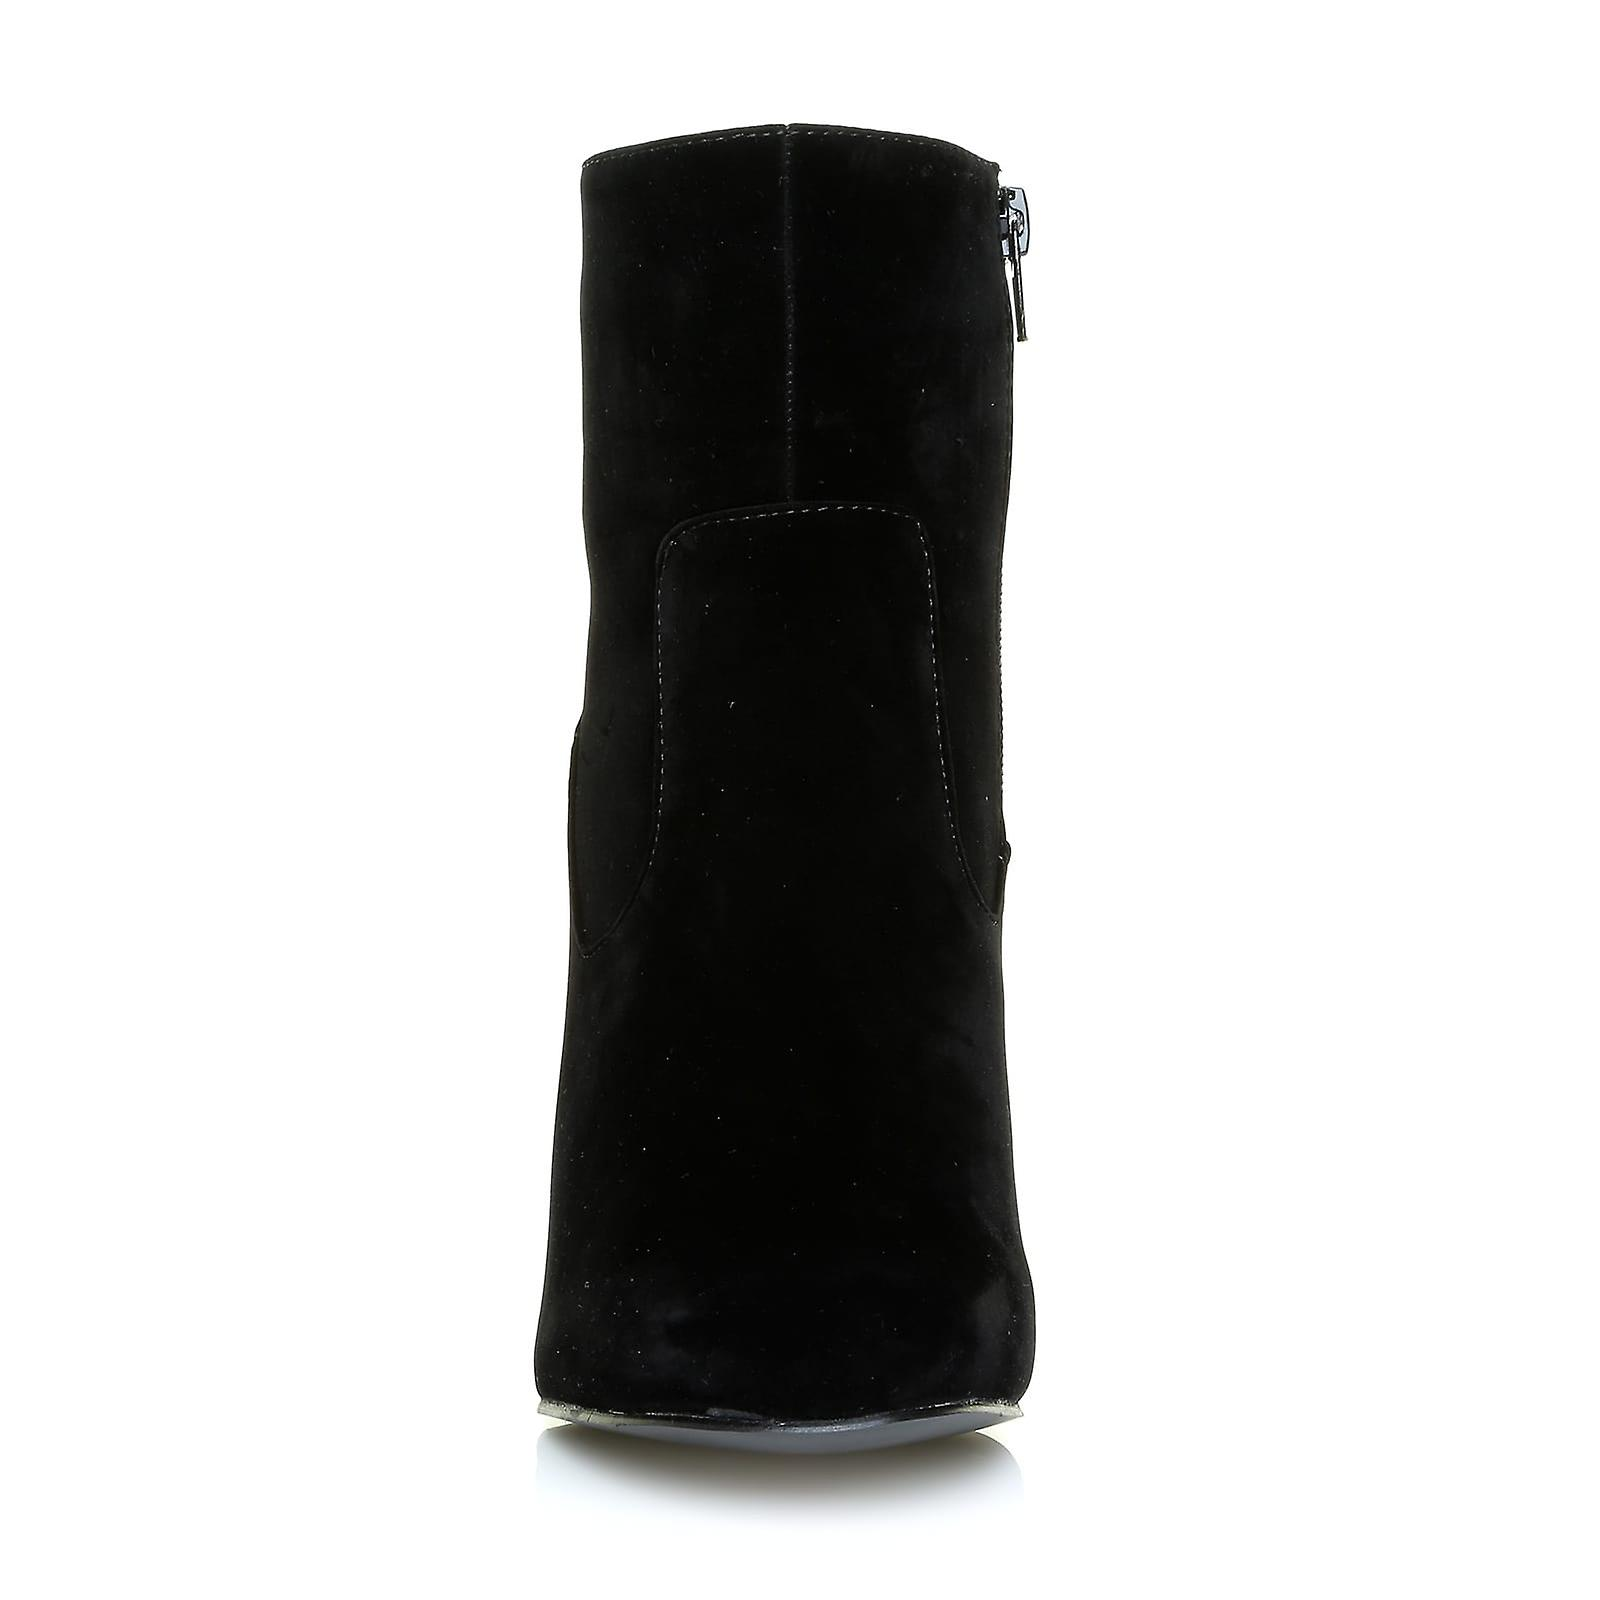 Boots Zip Faux Round with Black Suede Ankle KELLY Inside Toe Classic BvHO04xcwq